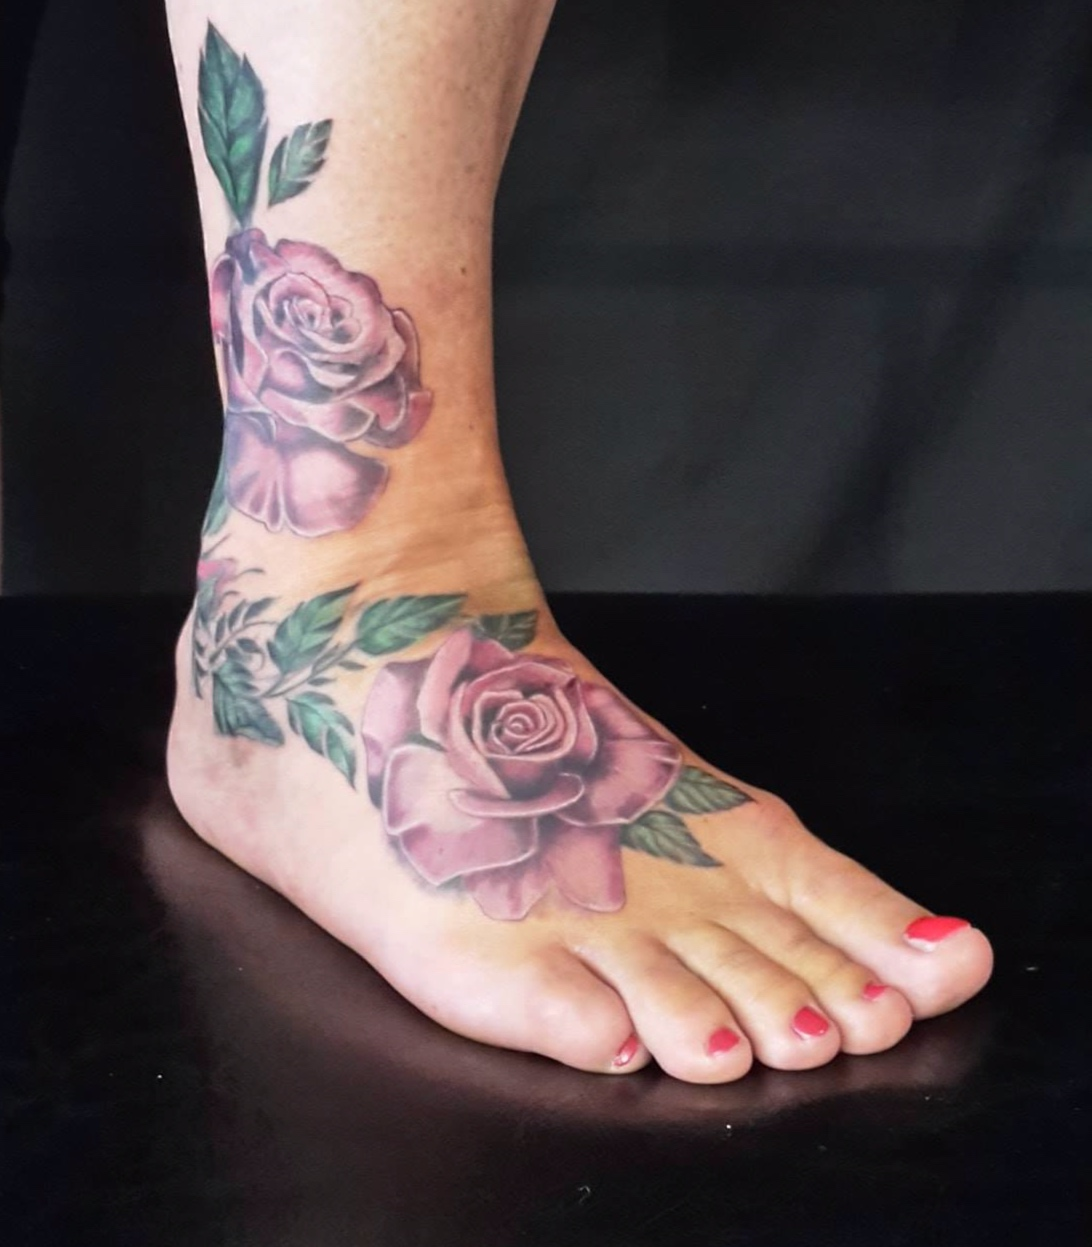 fioniverse-gil-division-rose-tattoo-colourful-bunt.jpg